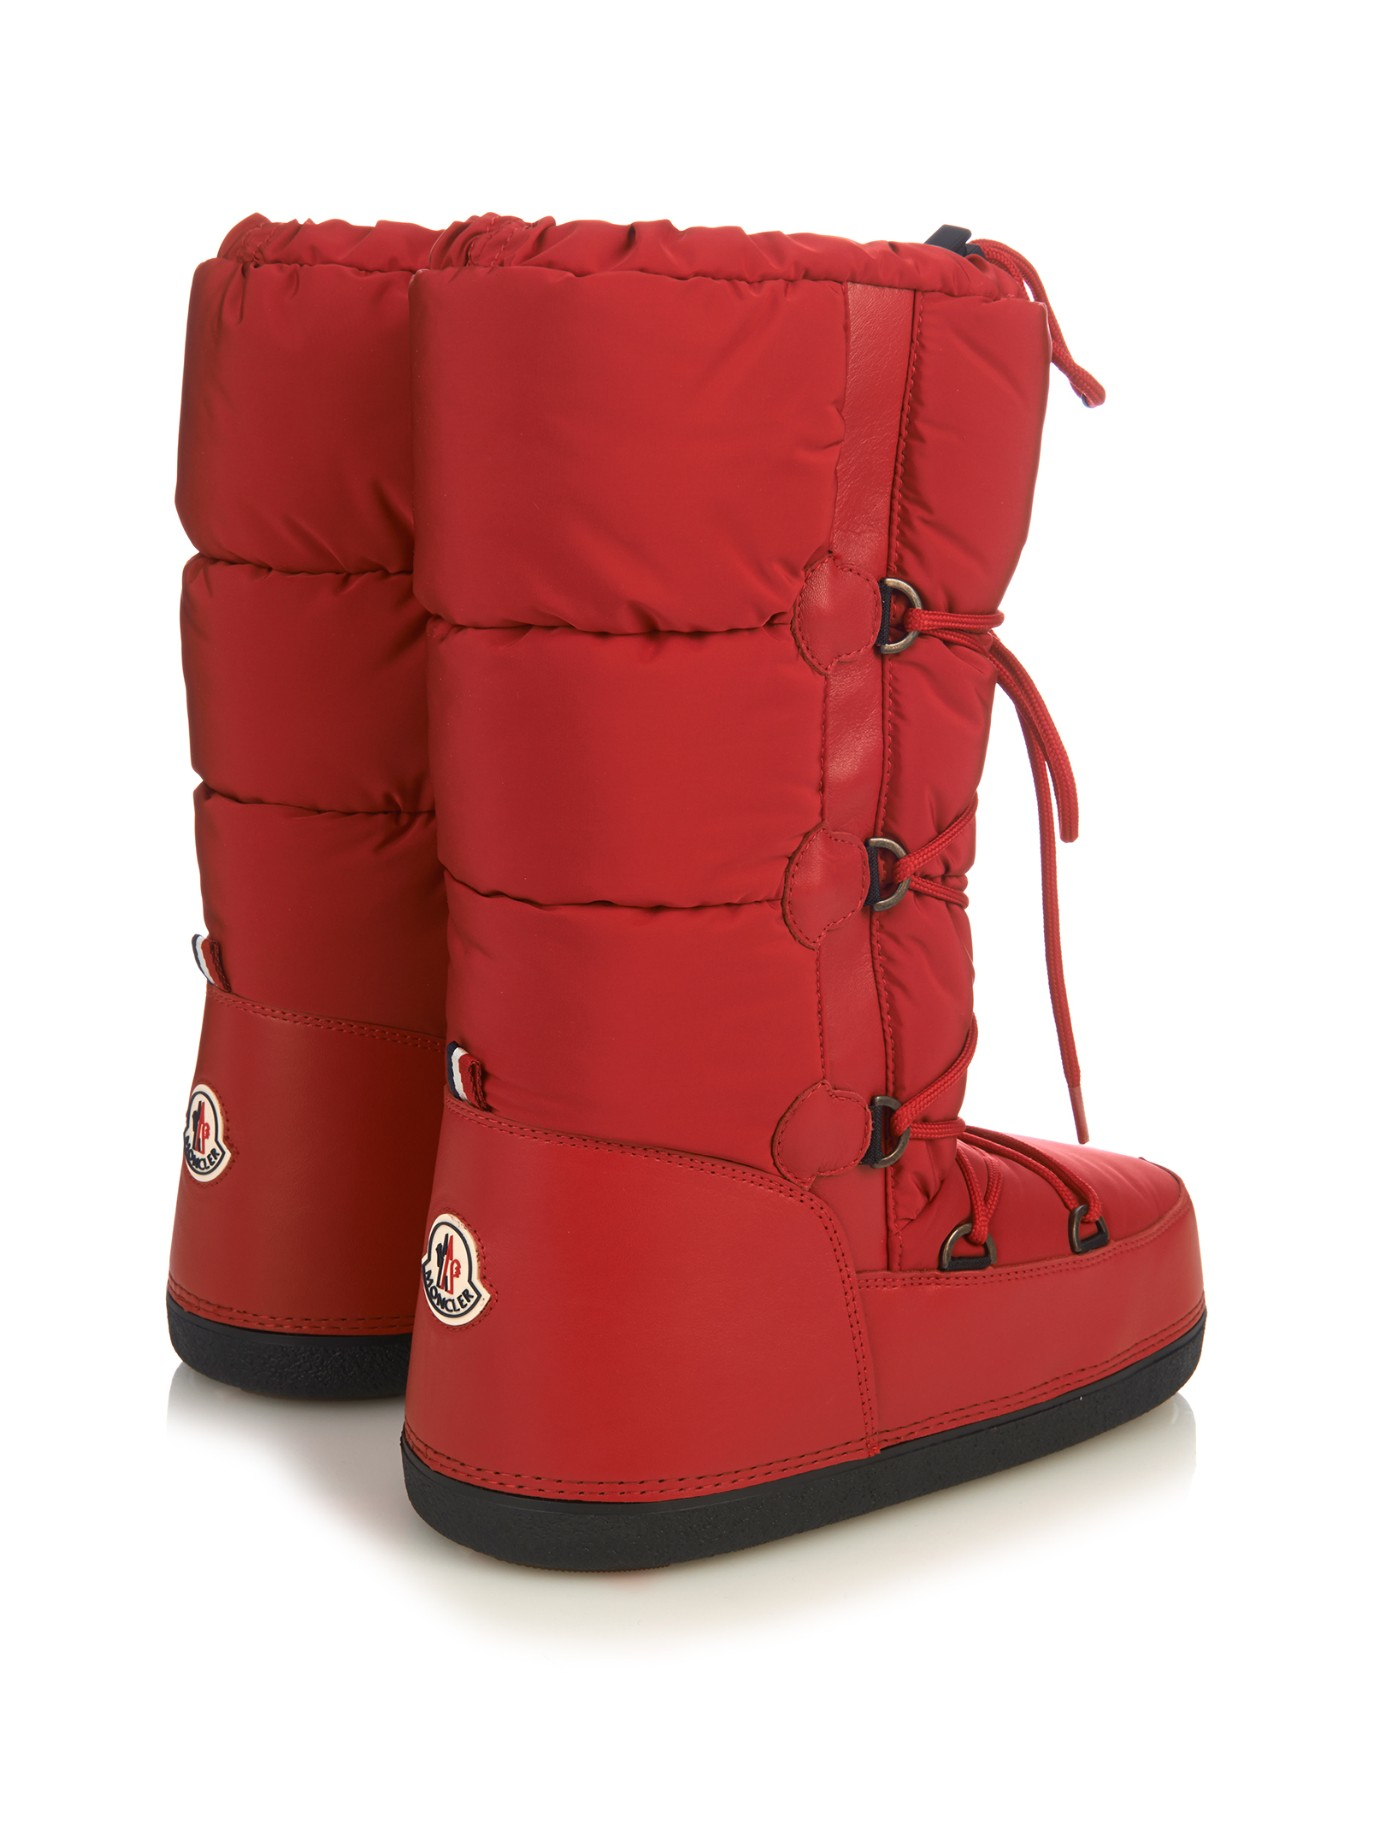 Moncler Moon Quilted Aprés-ski Boots in Red - Lyst 964f025c27e